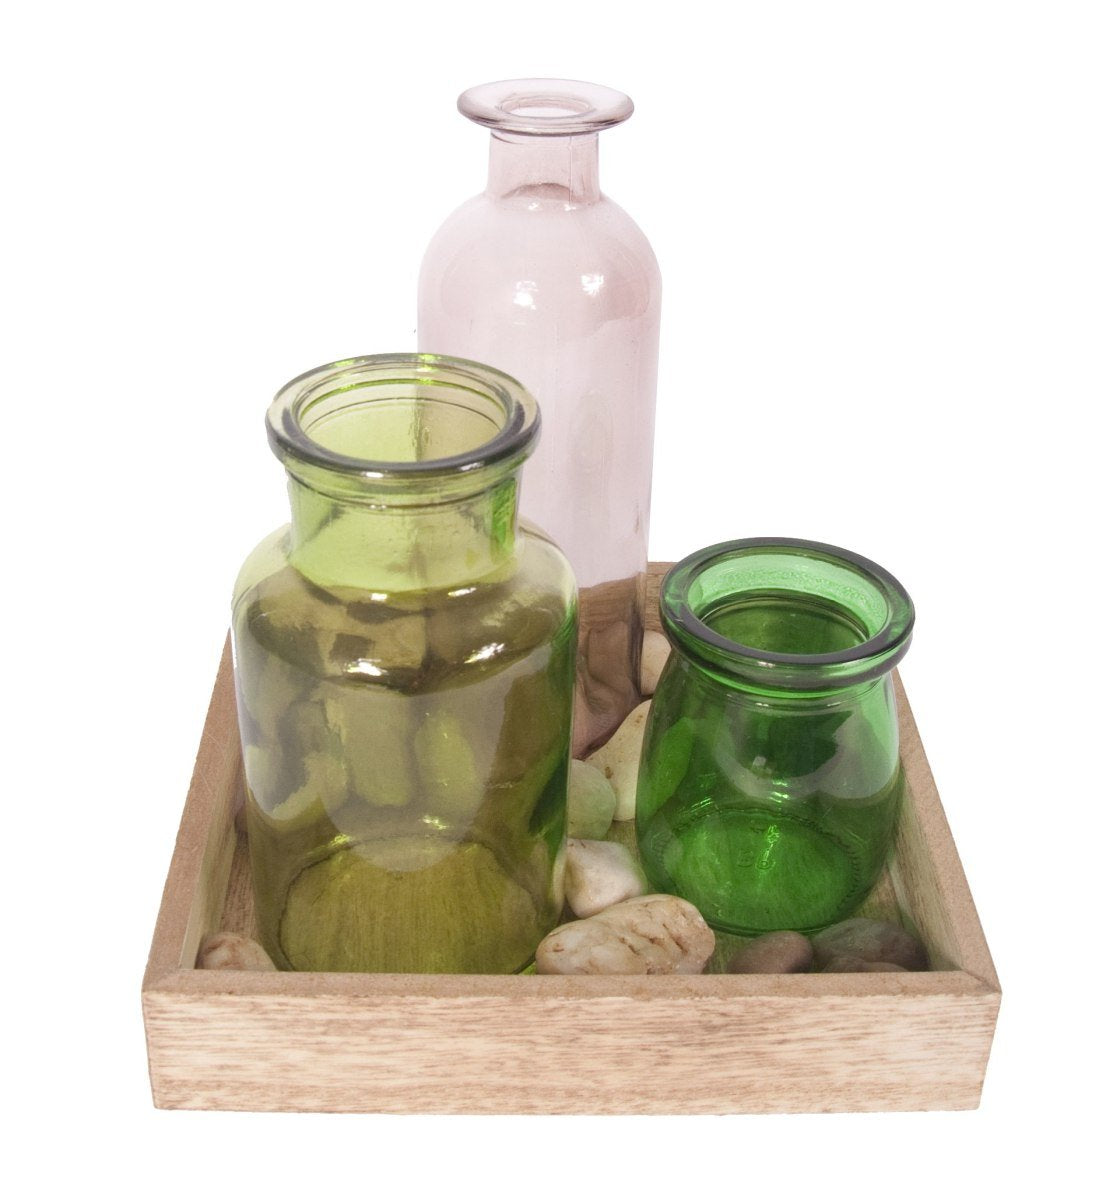 Contemporay Candle Vases S/3 Square Tray-fliphome.com.au